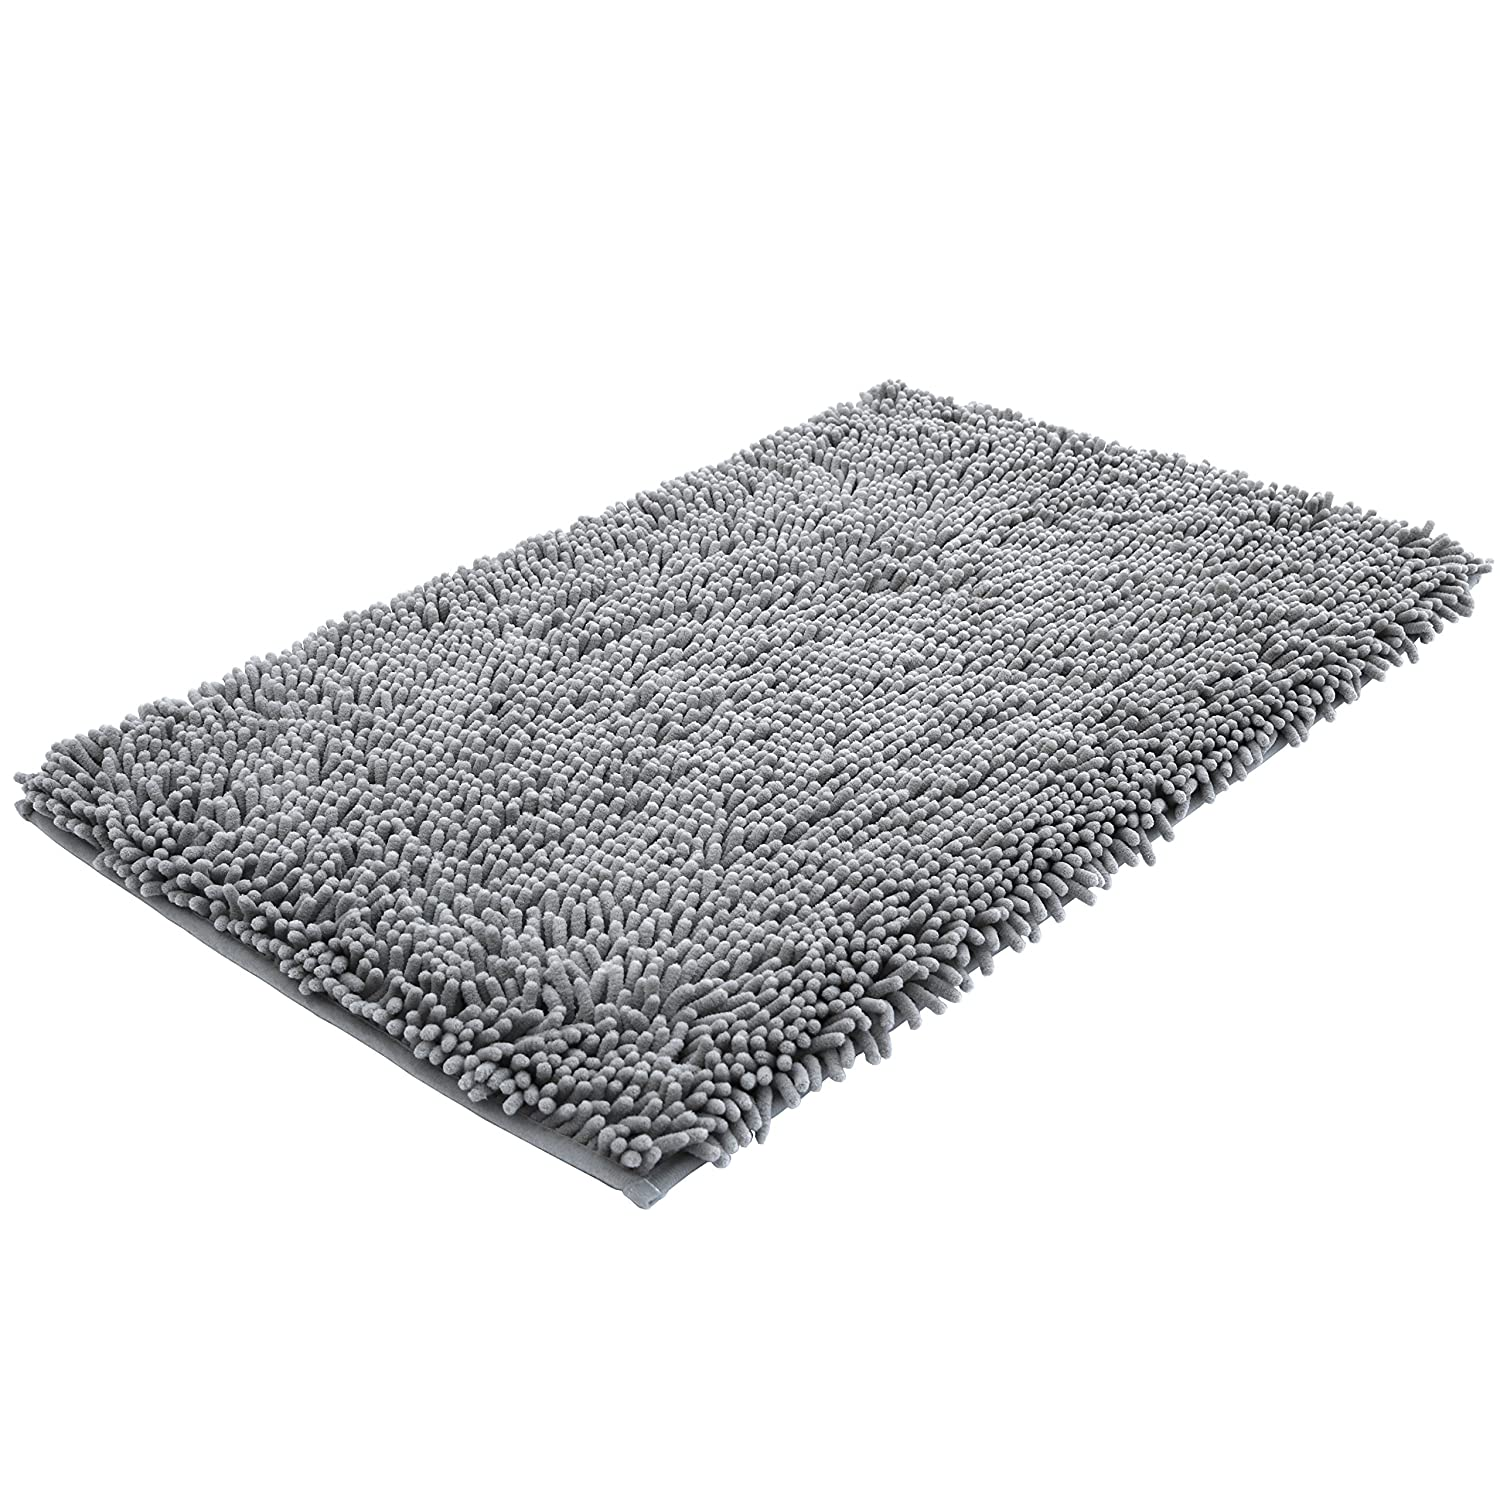 Shop Amazoncom Bath Rugs - White plush bathroom rugs for bathroom decorating ideas